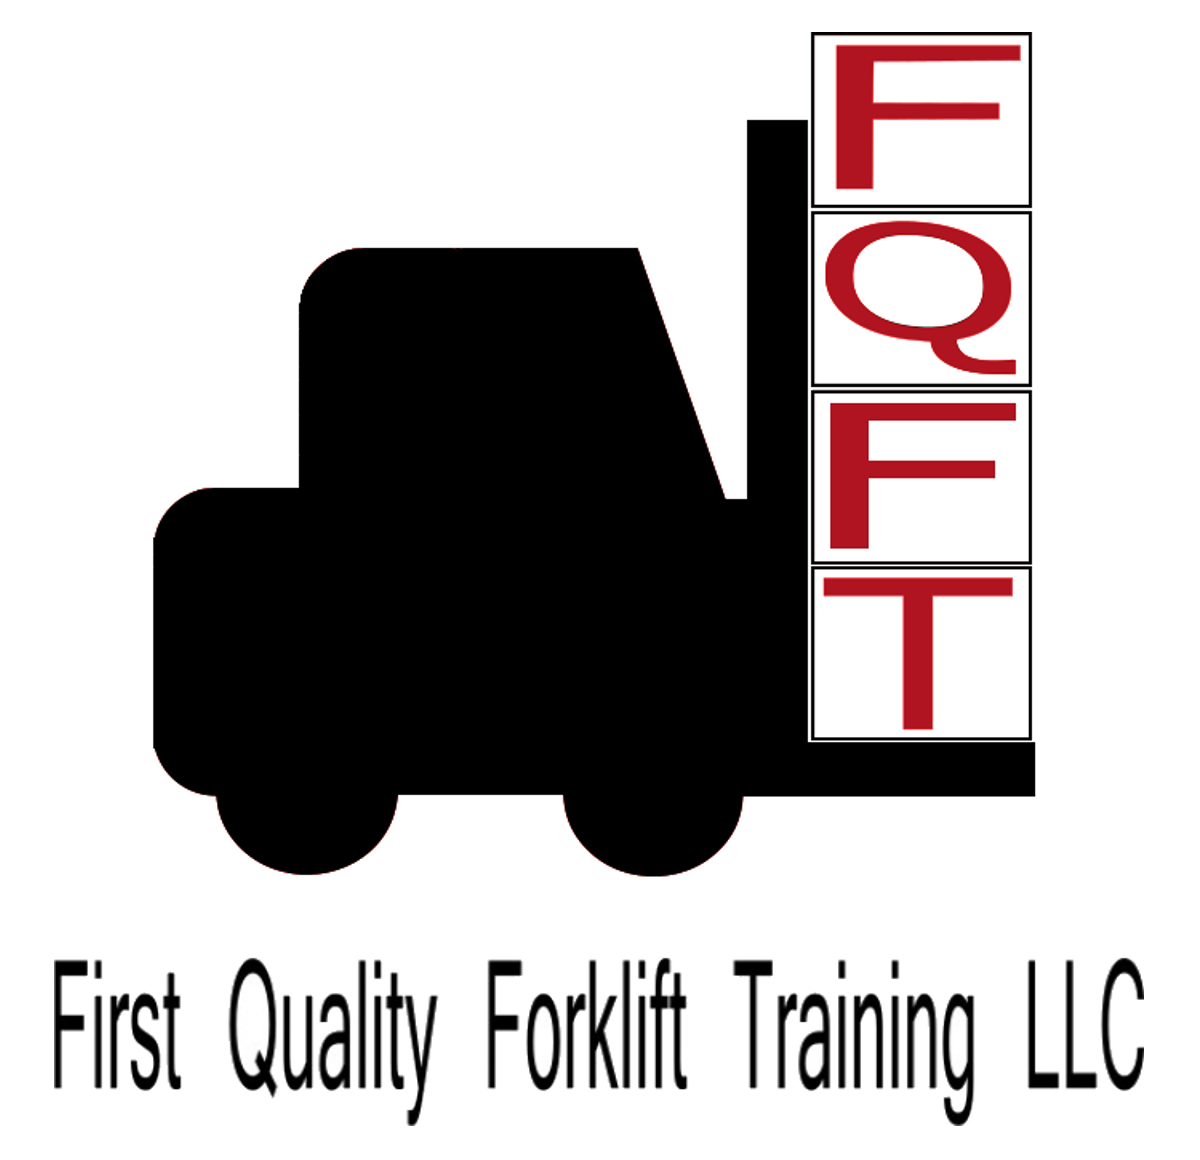 Ultimate Cheat Sheet For Osha Forklift Certification First Quality